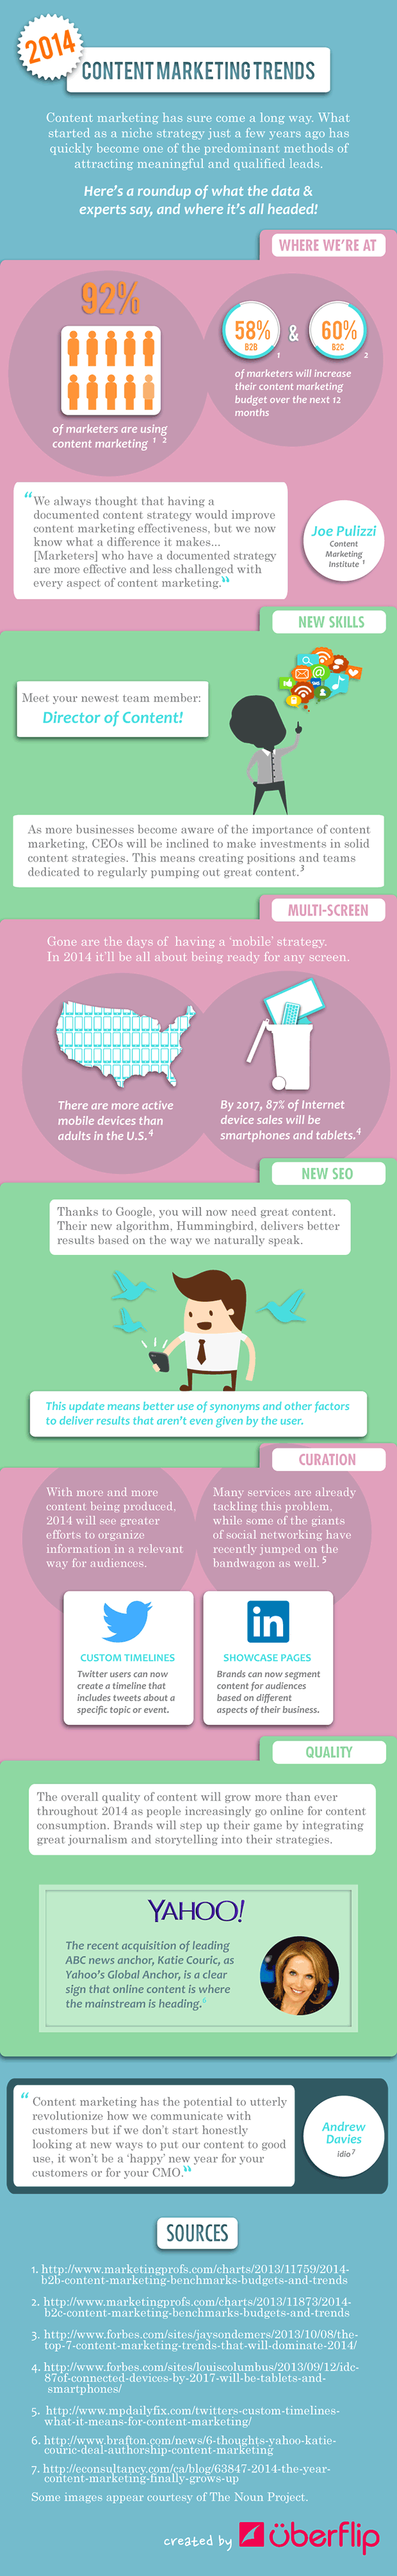 03 2014-content-marketing-trends-infographic